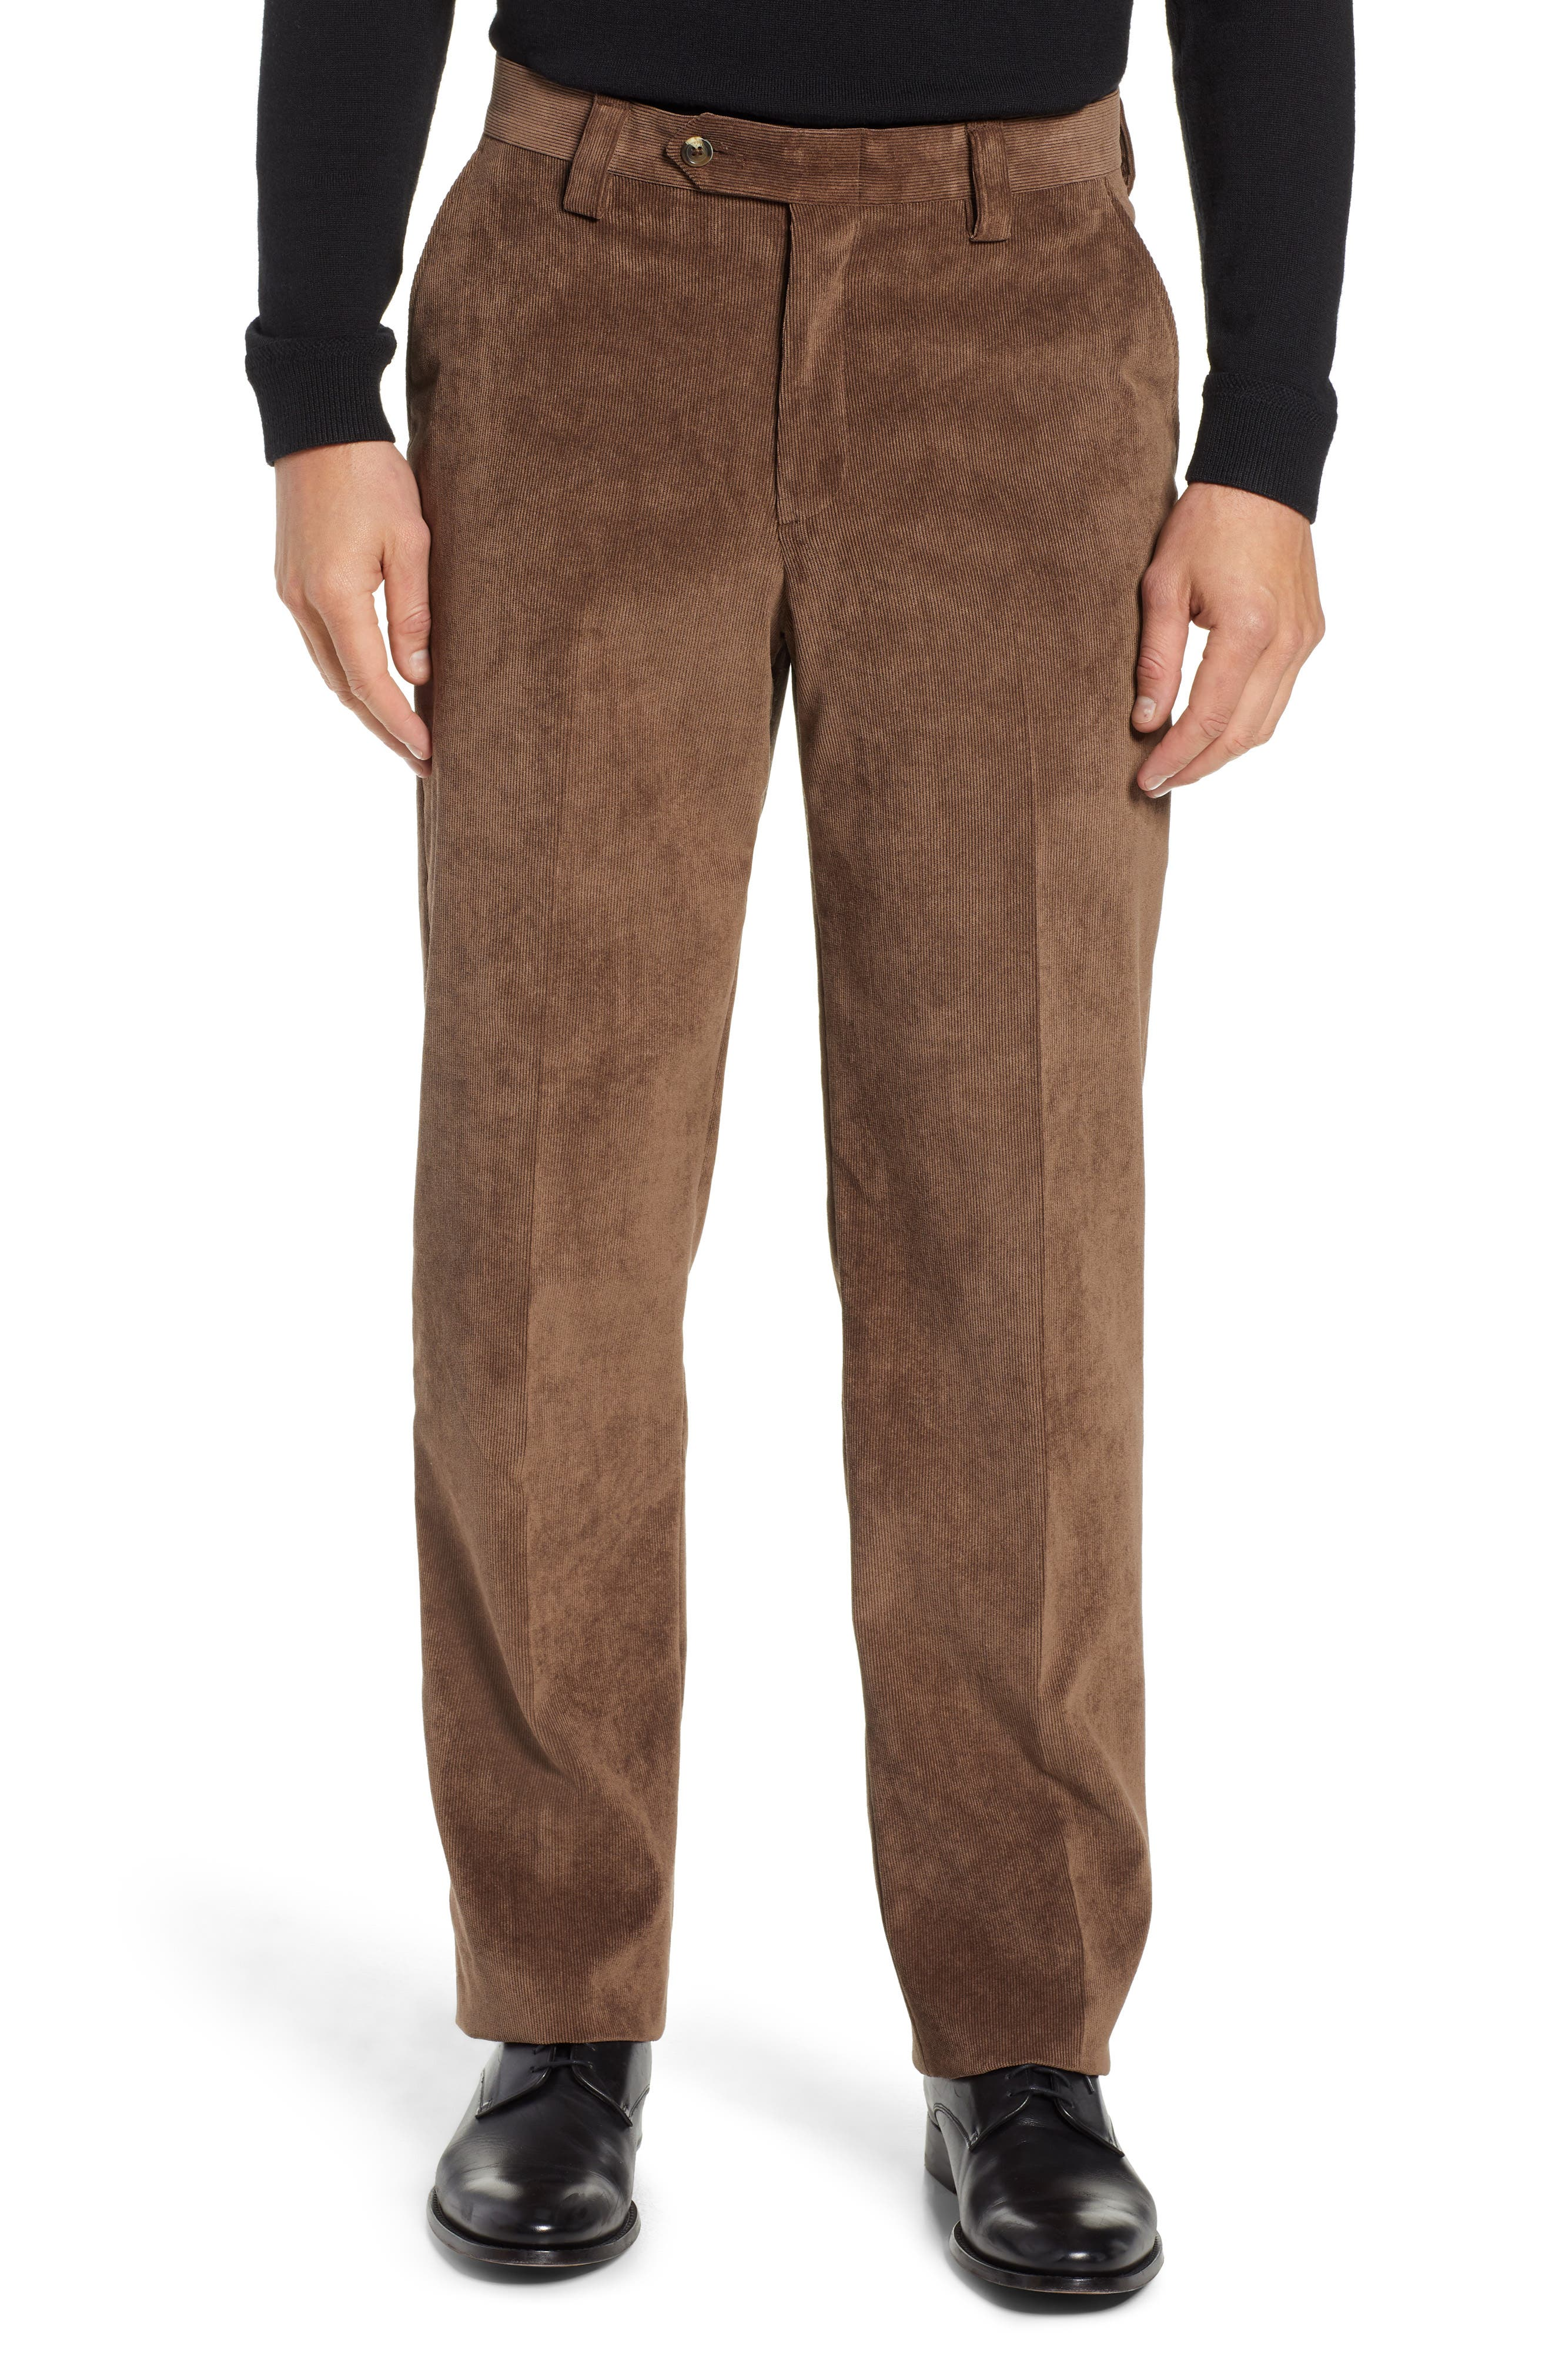 BERLE,                             Classic Fit Flat Front Corduroy Trousers,                             Main thumbnail 1, color,                             200